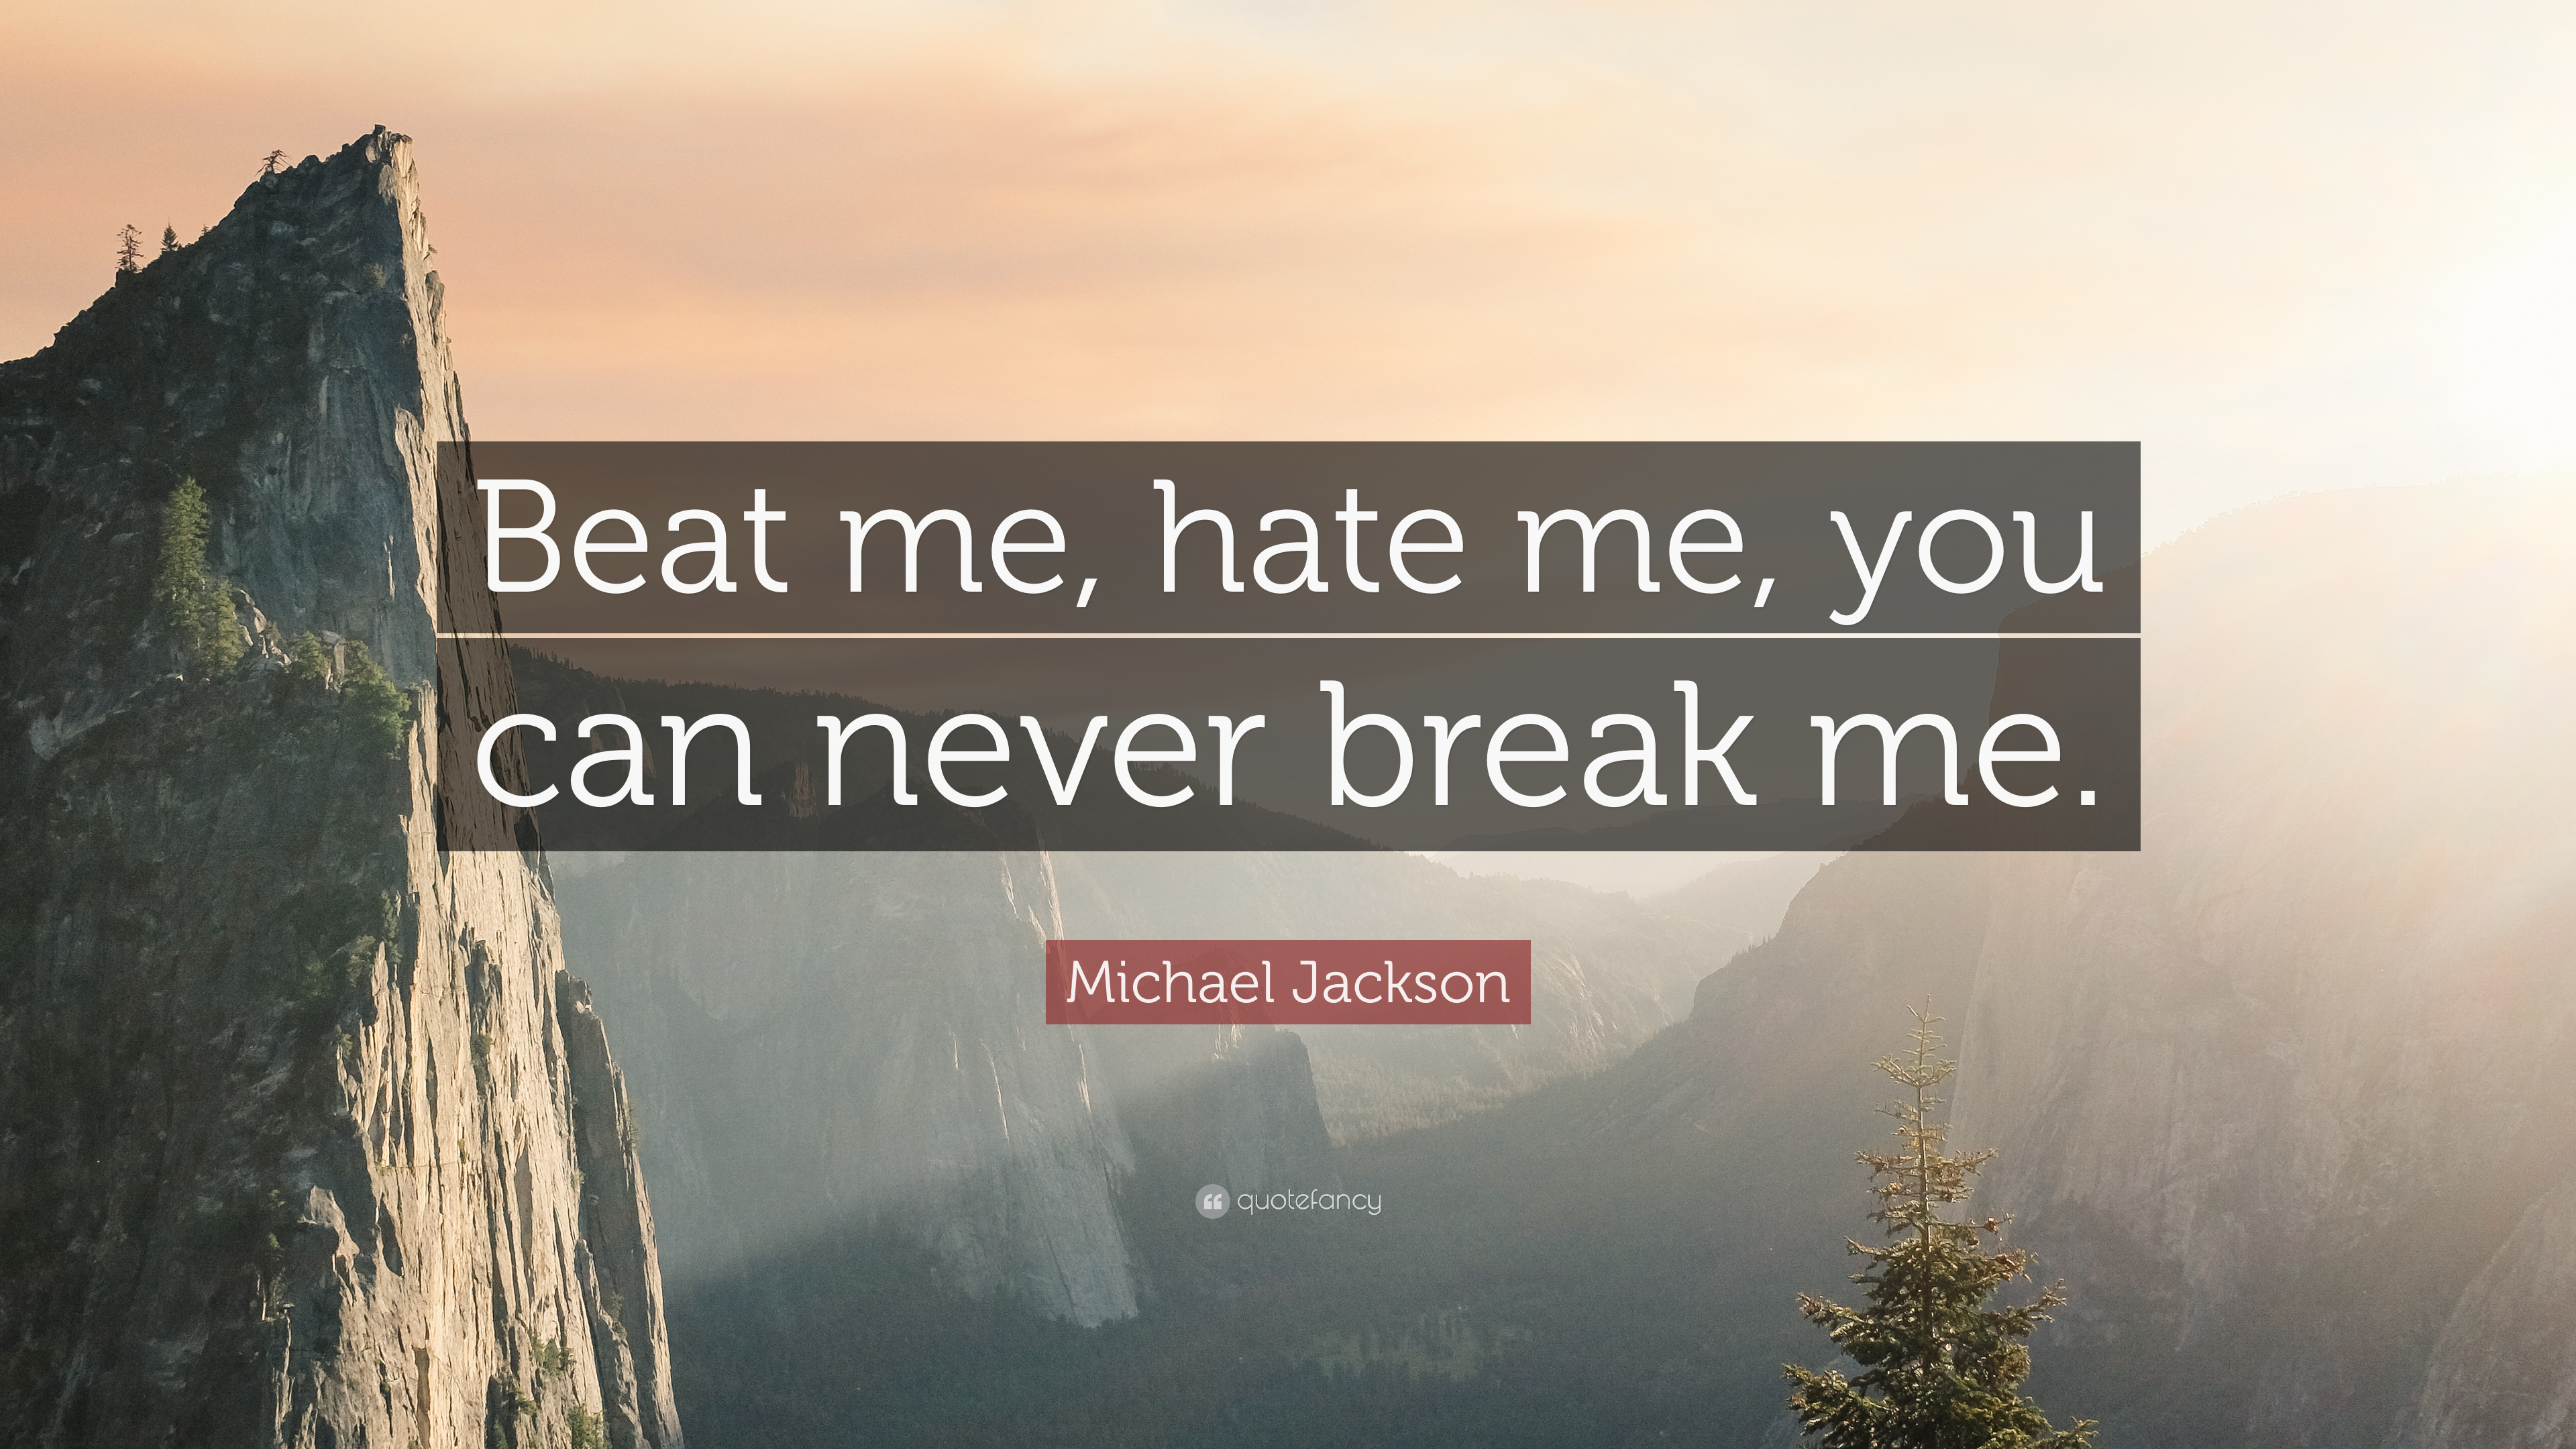 Michael Jackson Quote: Beat me, hate me, you can never